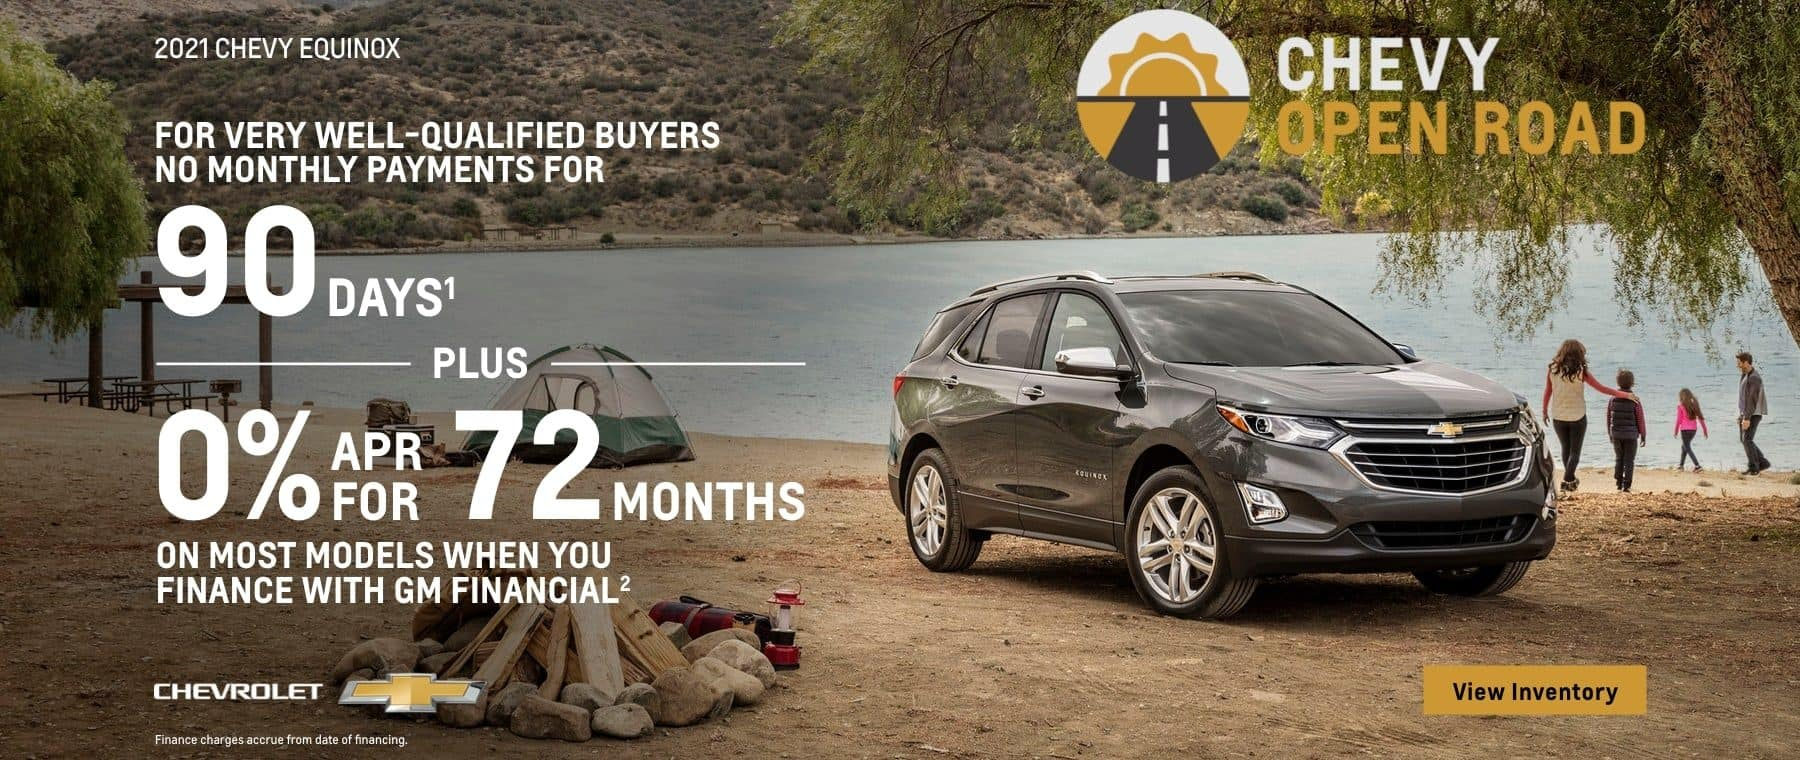 2021 Chevy Equinox. For very well-qualified buyers no monthly payments for 90 days. Plus, 0% APR for 72 months on most models when you finance with GM Financial.